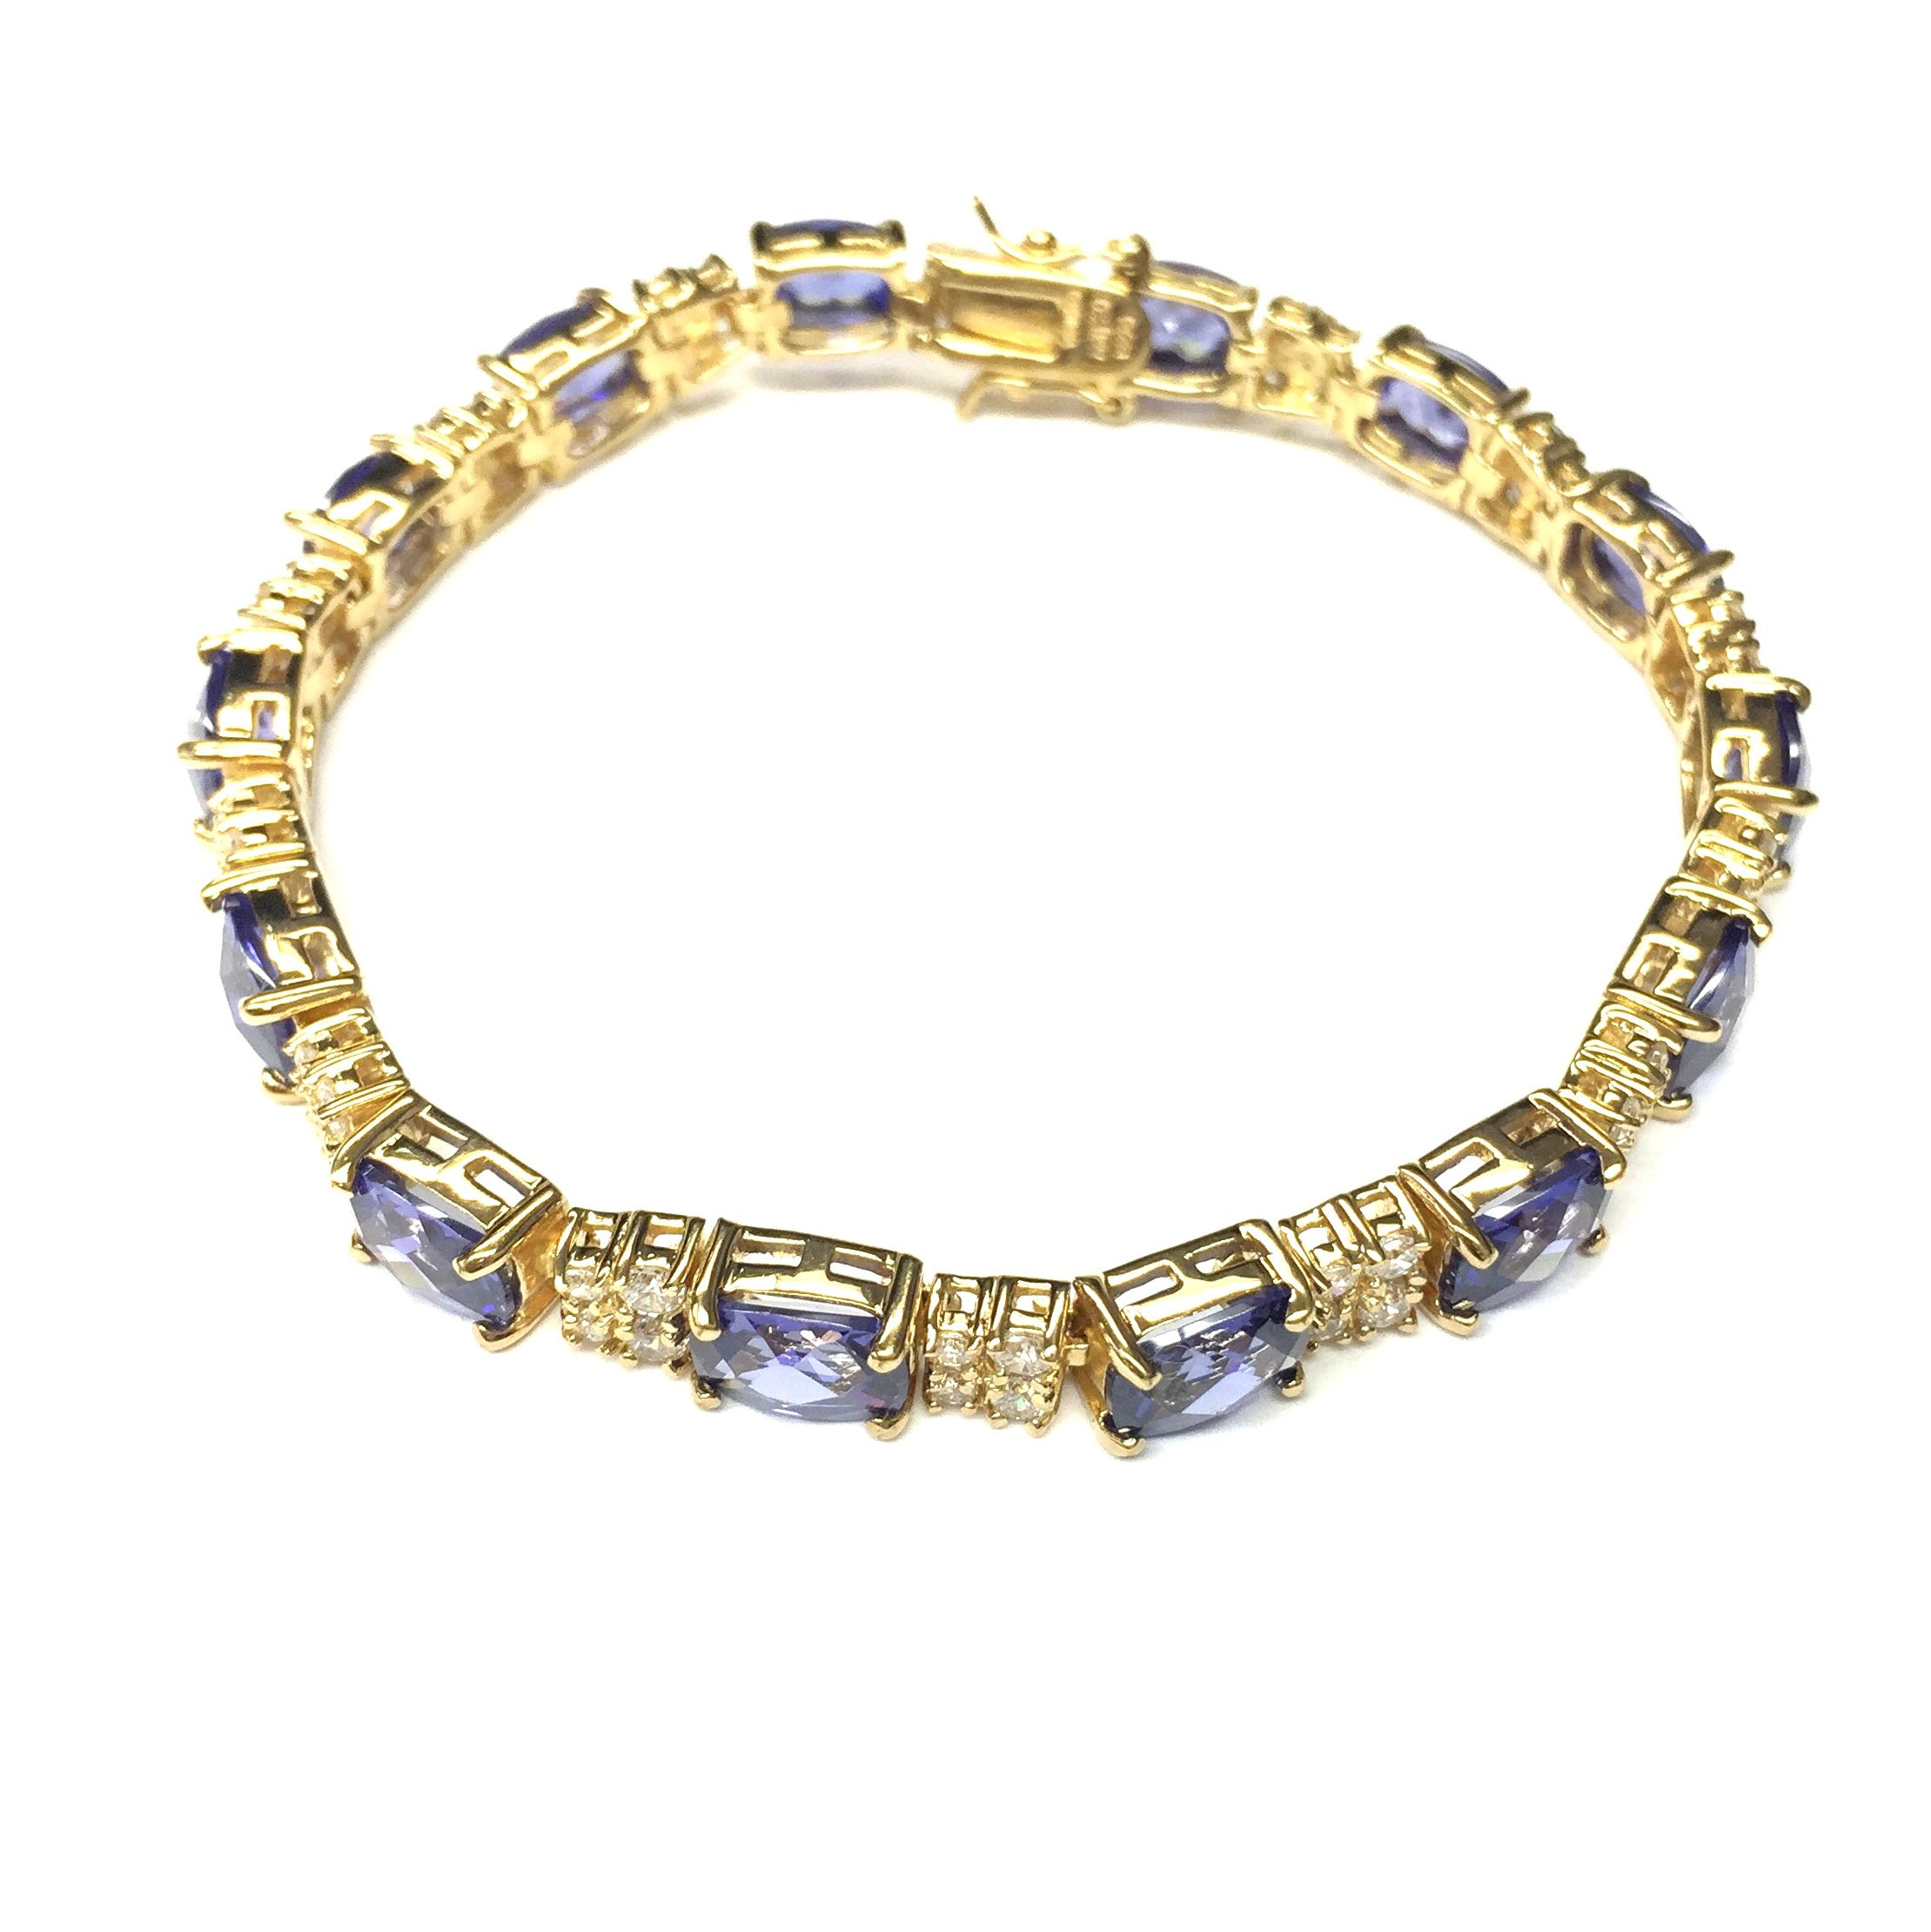 Sterling Silver Gold Plated Fancy Cut Tanzanite Cz Bracelet by Travel Jewelry (Image #2)